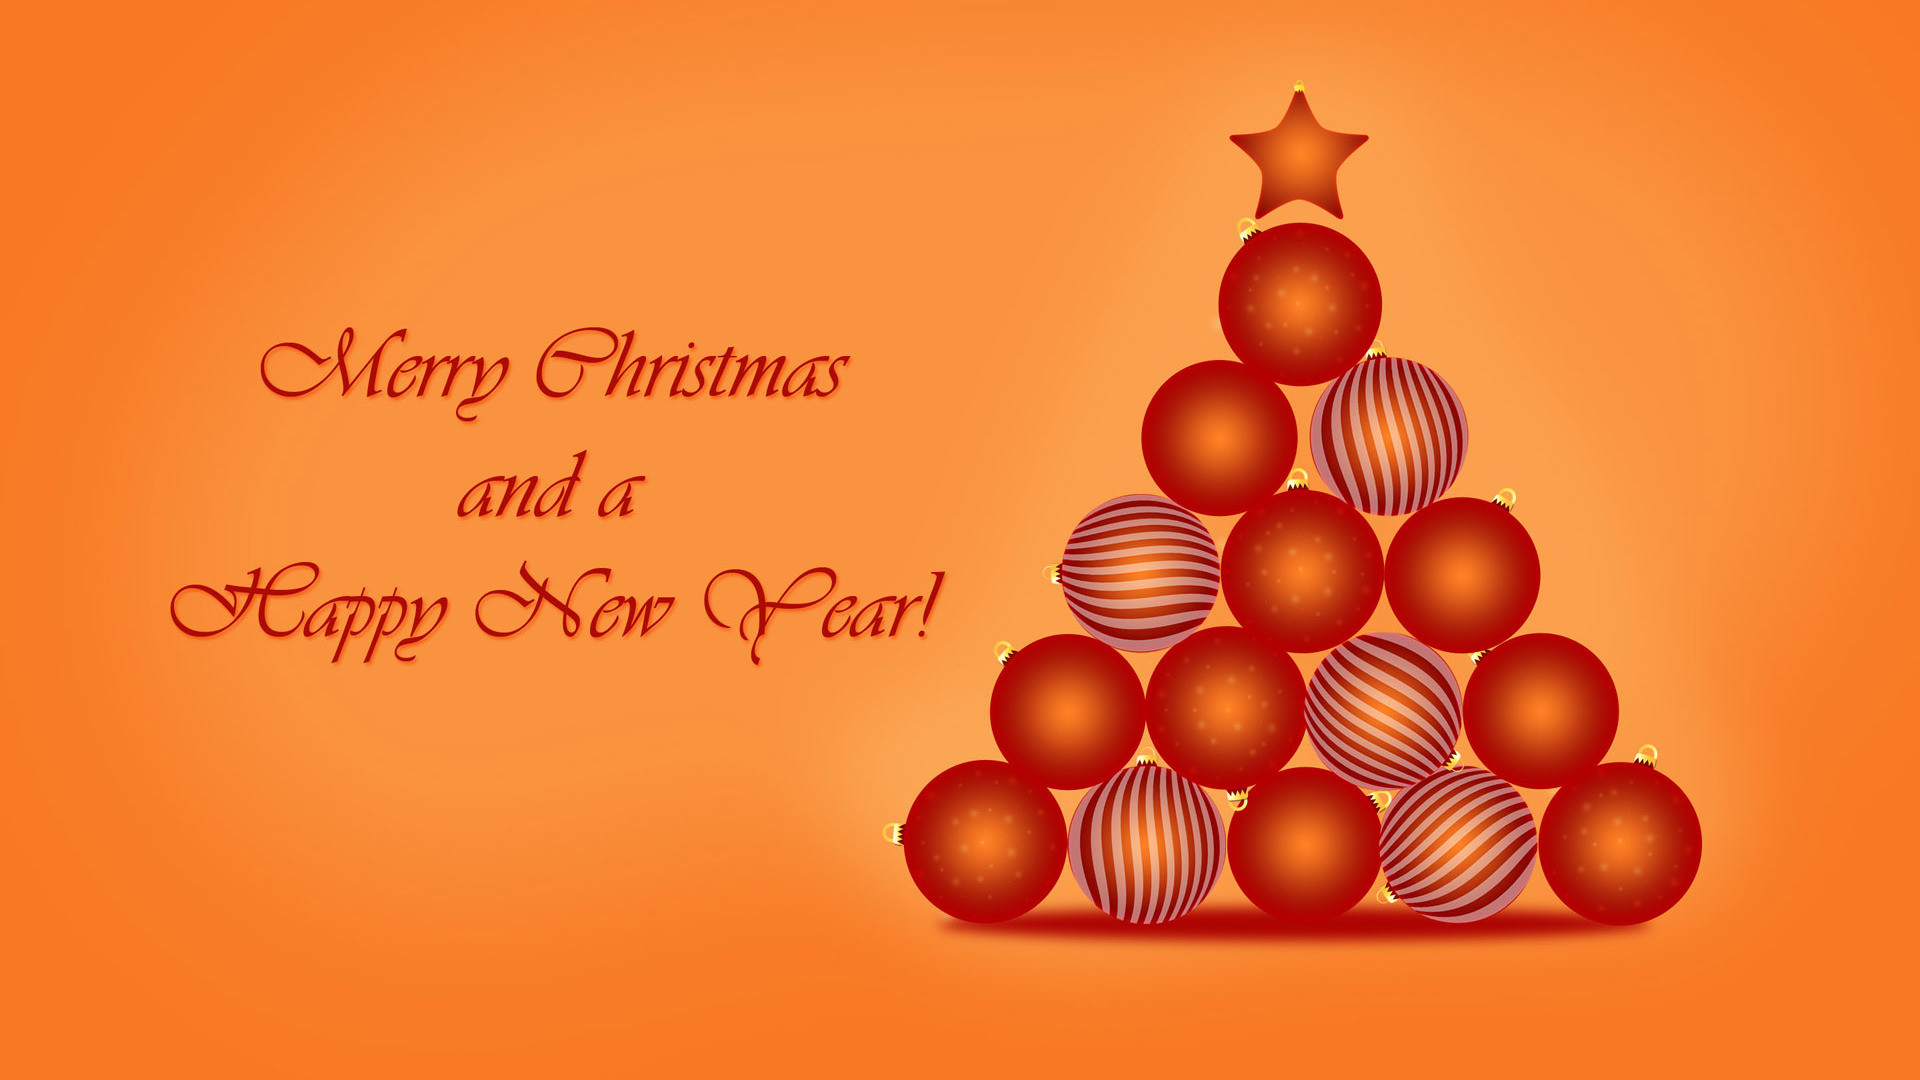 1920x1080 merry christmas and happy new year wallpaper free download